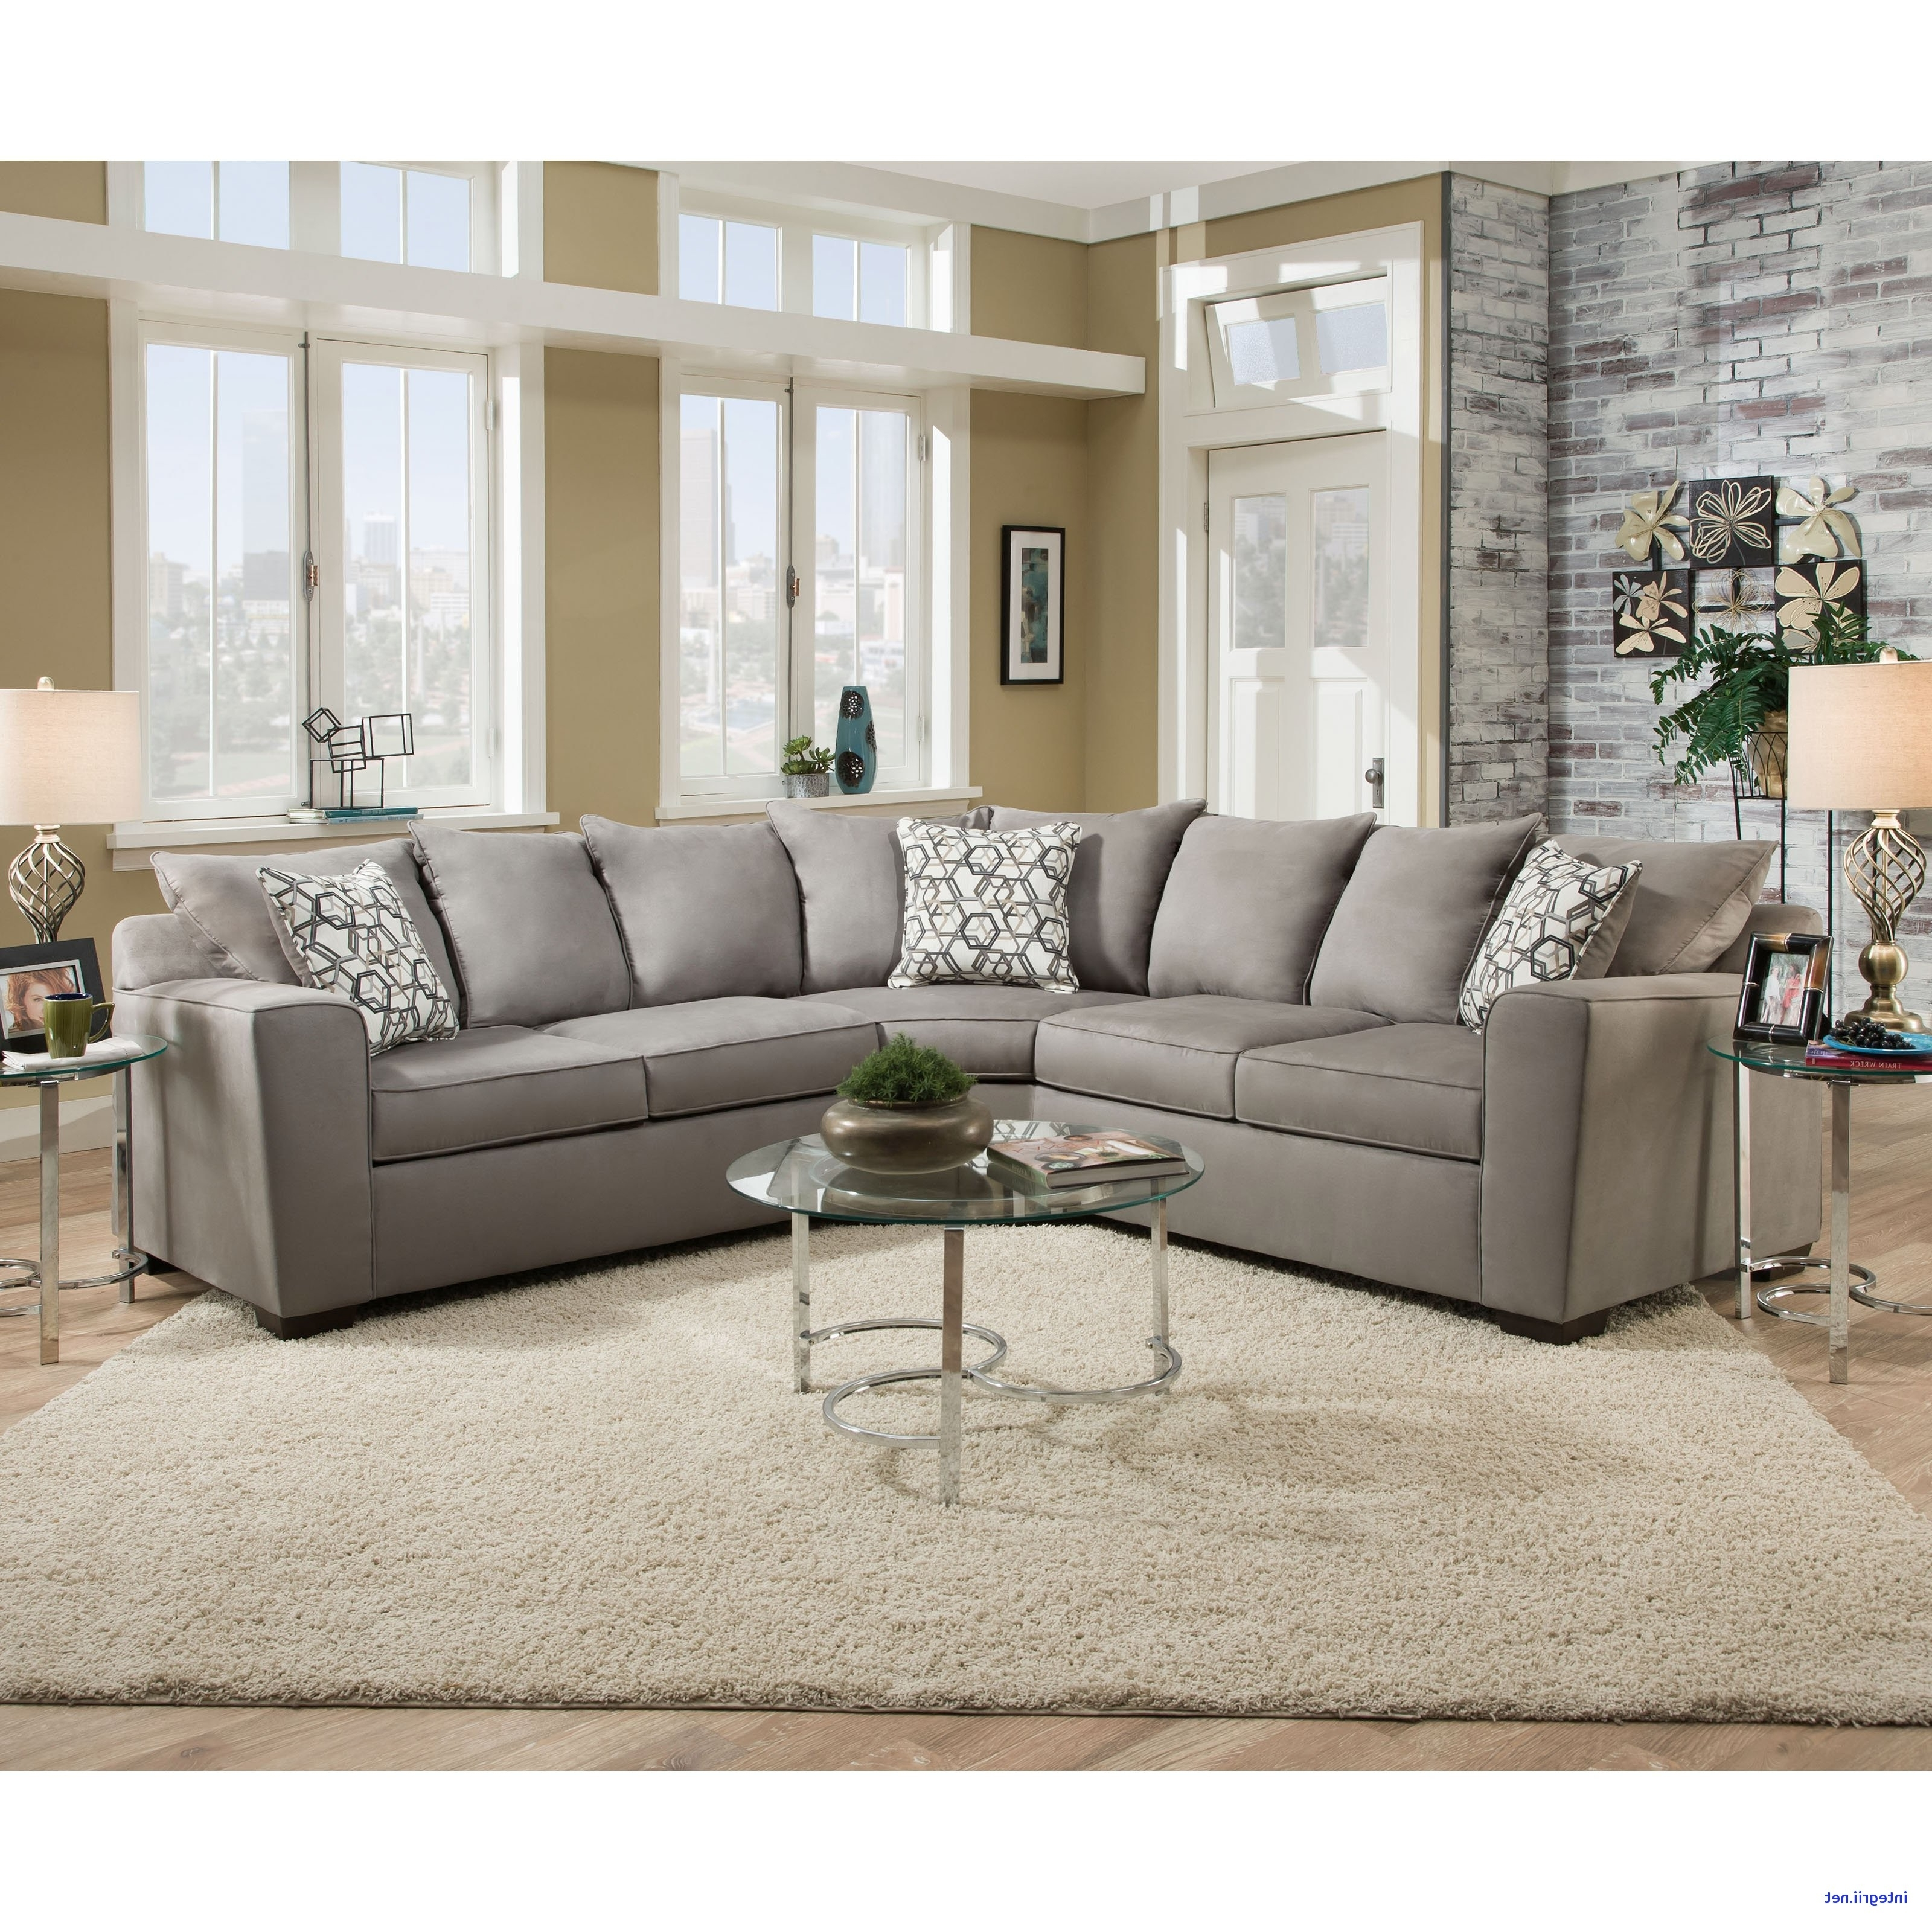 Most Recent Sectionals Unique Chelsea Home Furniture Caroline Sectional Sofa Pertaining To Home Furniture Sectional Sofas (View 2 of 20)